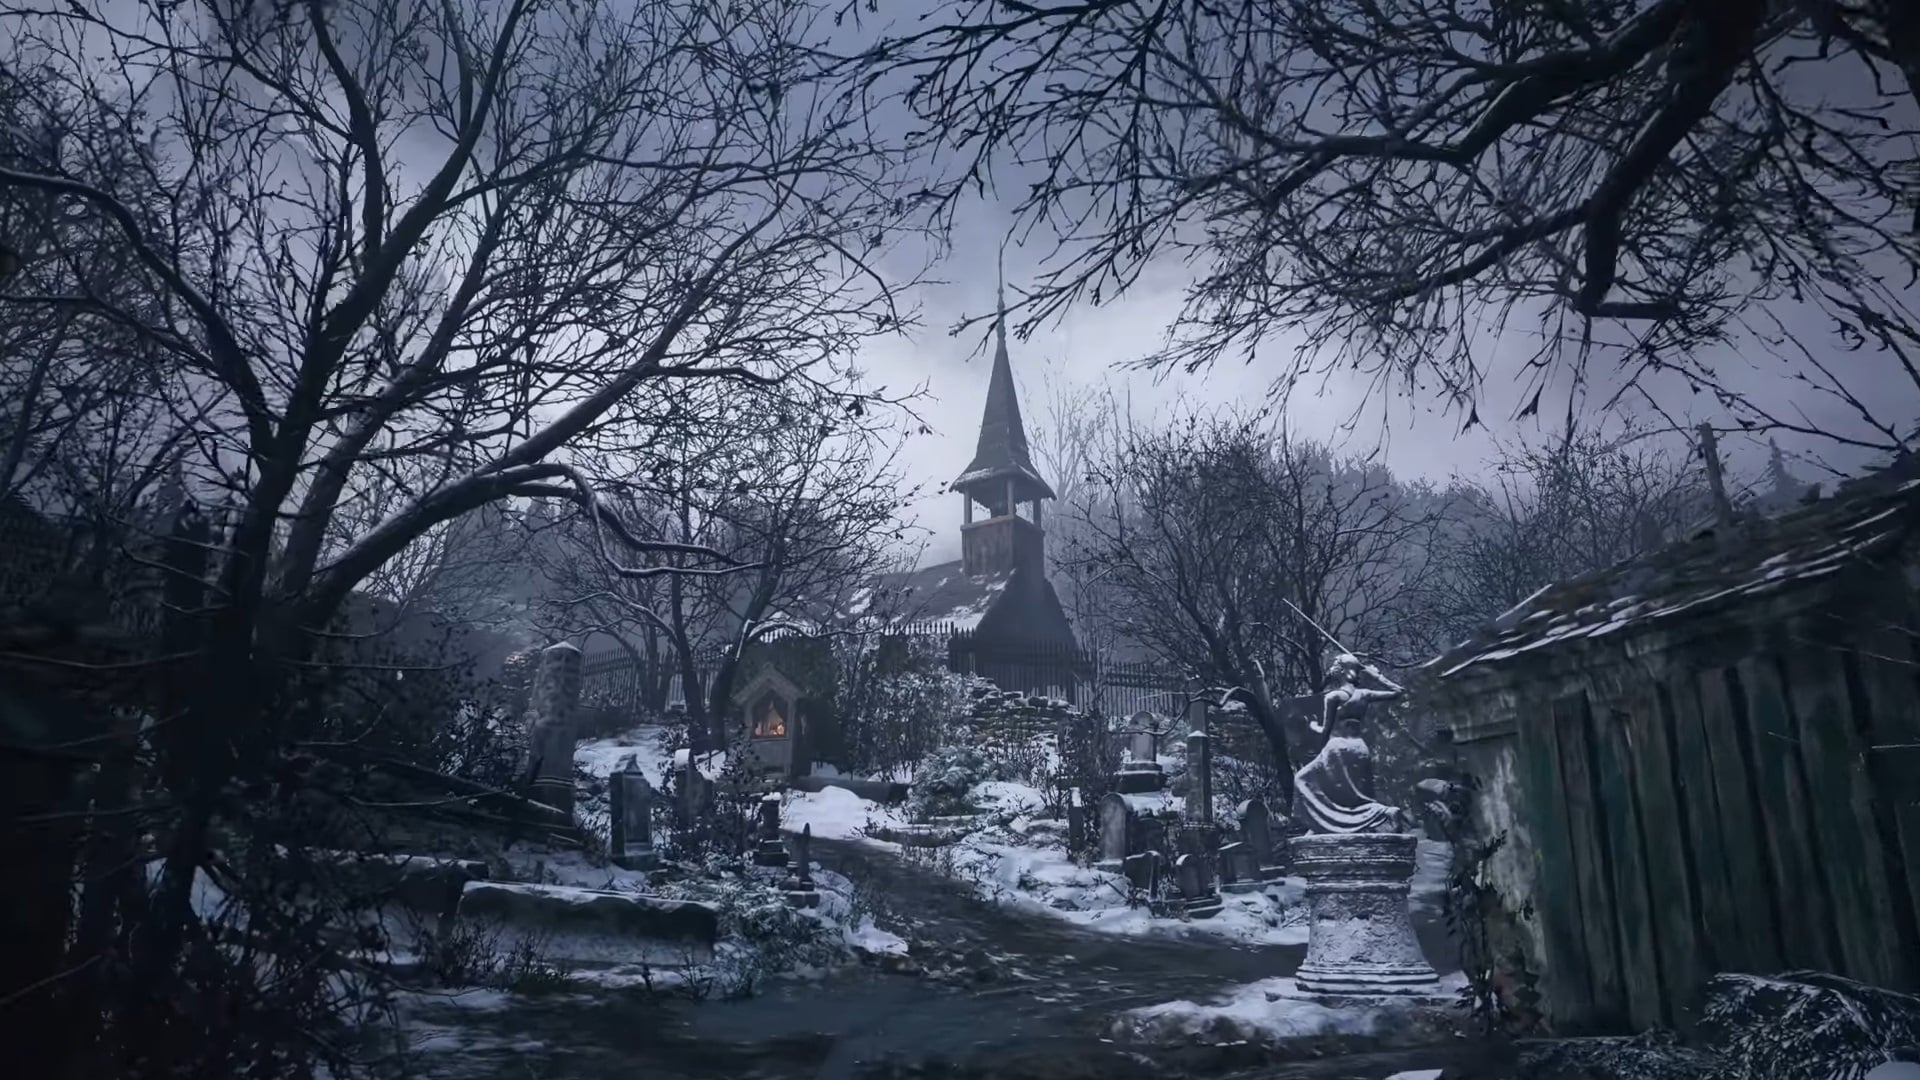 Resident Evil Village Will Support AMD Ray Tracing, FidelityFX on PC